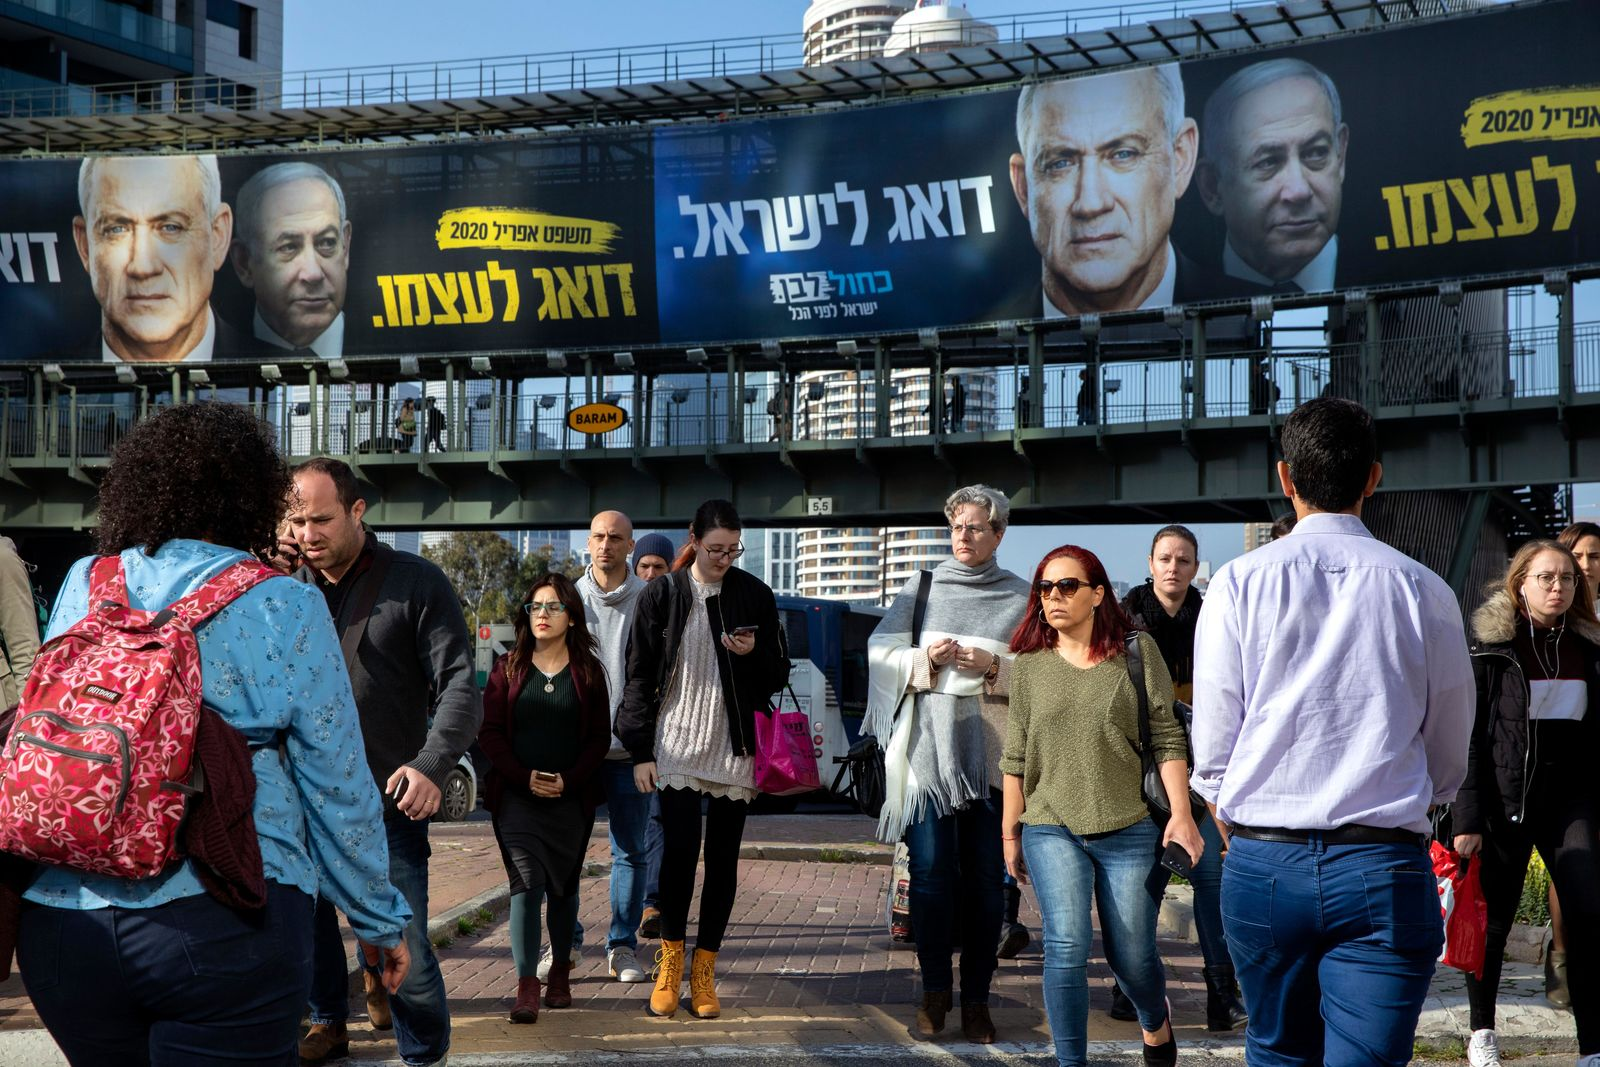 People walk next to an election campaign billboard of Blue and White party shows its party leader Benny Gantz, and Israeli Prime Minister Benjamin Netanyahu, in Ramat Gan, Israel, Tuesday, Feb. 18, 2020. (AP Photo/Oded Balilty)